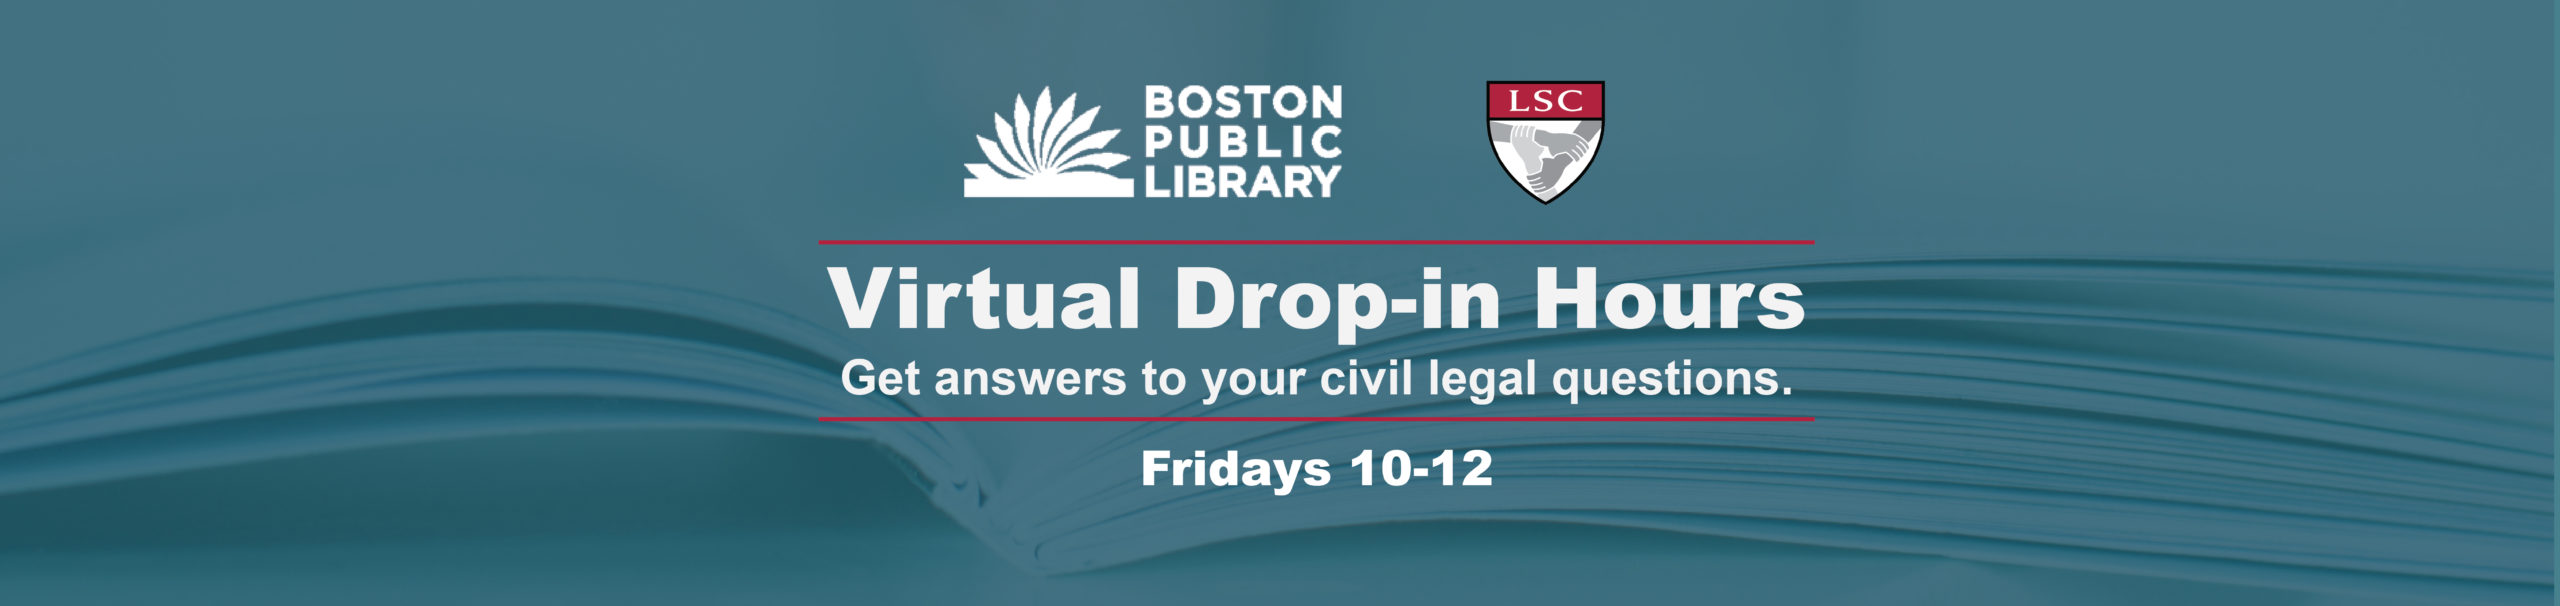 Library Drop-in Hours Fridays 10-12